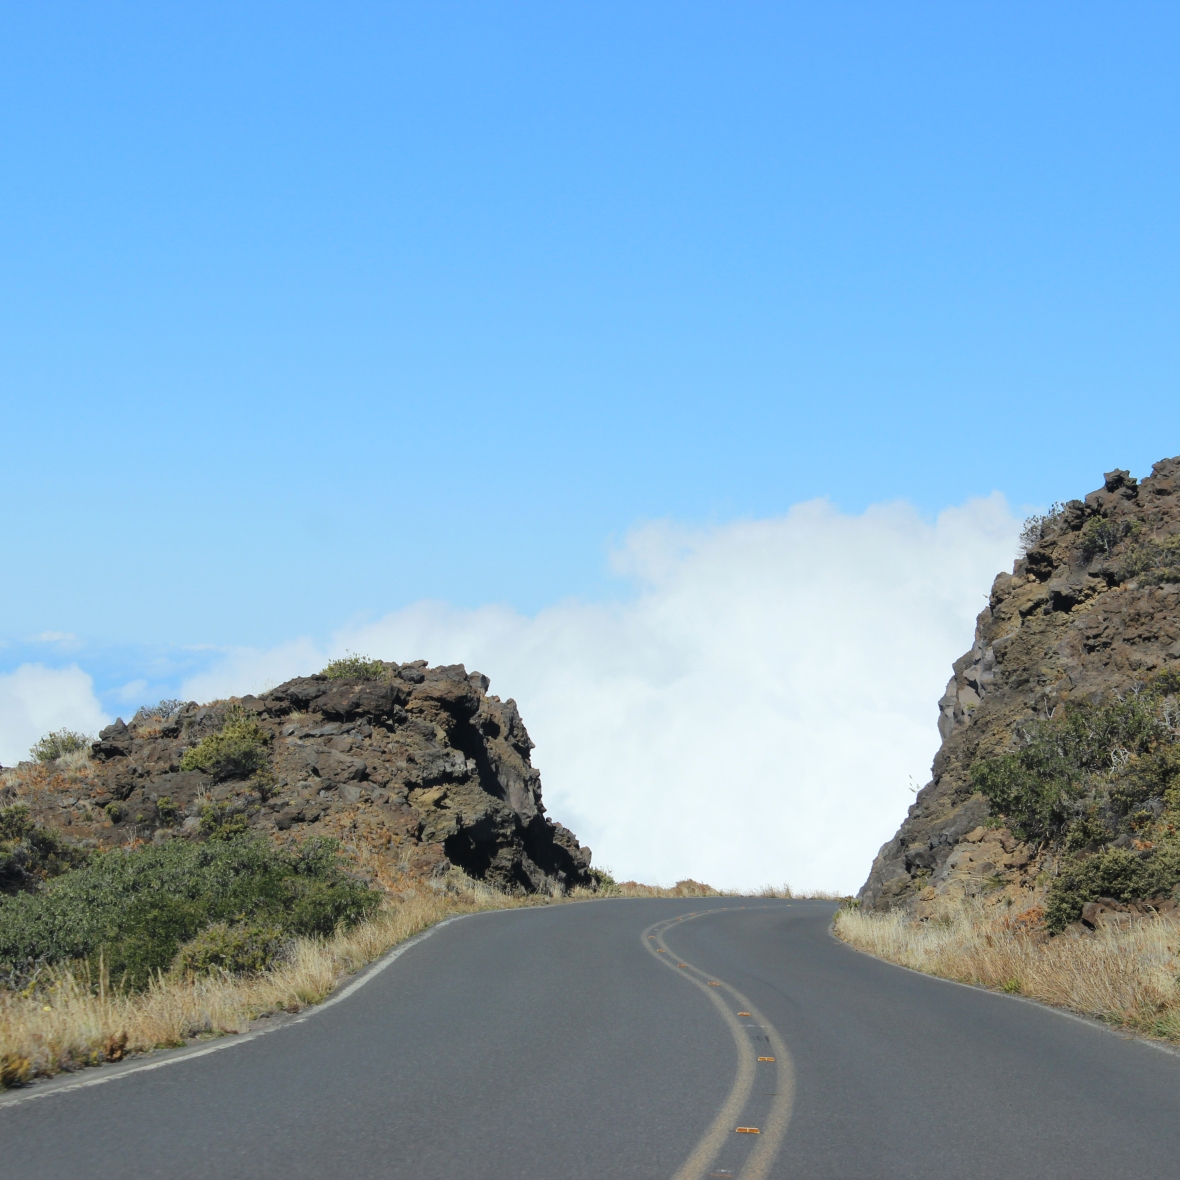 Road up to Haleakala Volcano